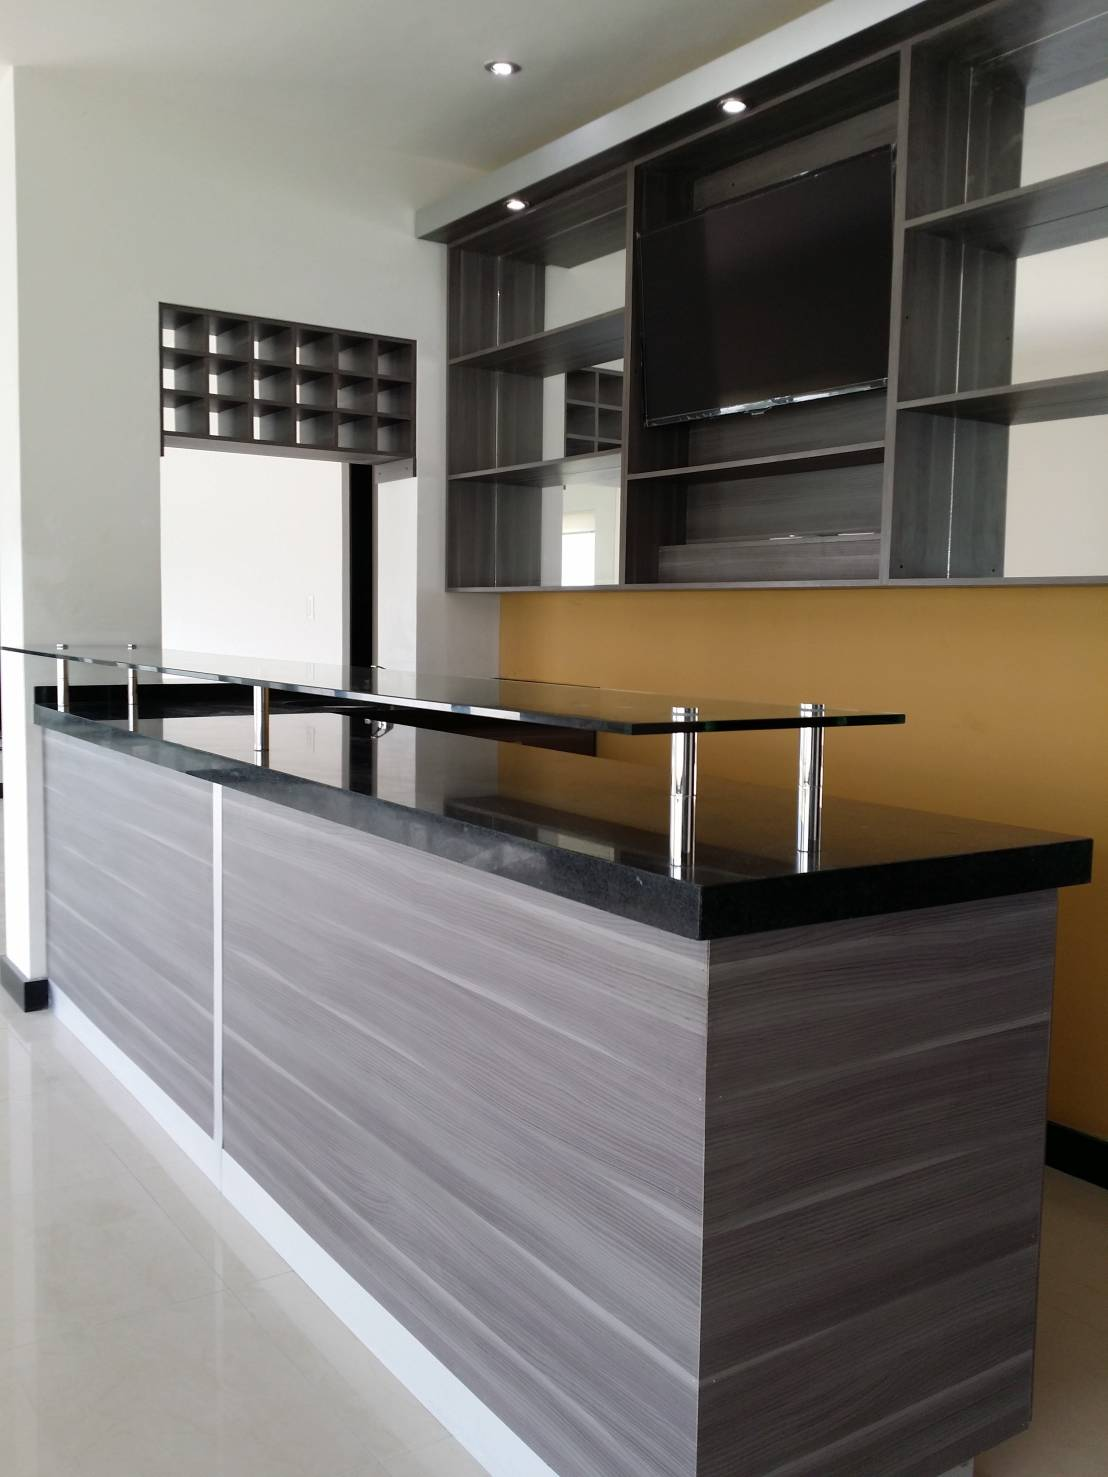 Barra tipo bar de baldai mobiliario homify for Bar para cocina